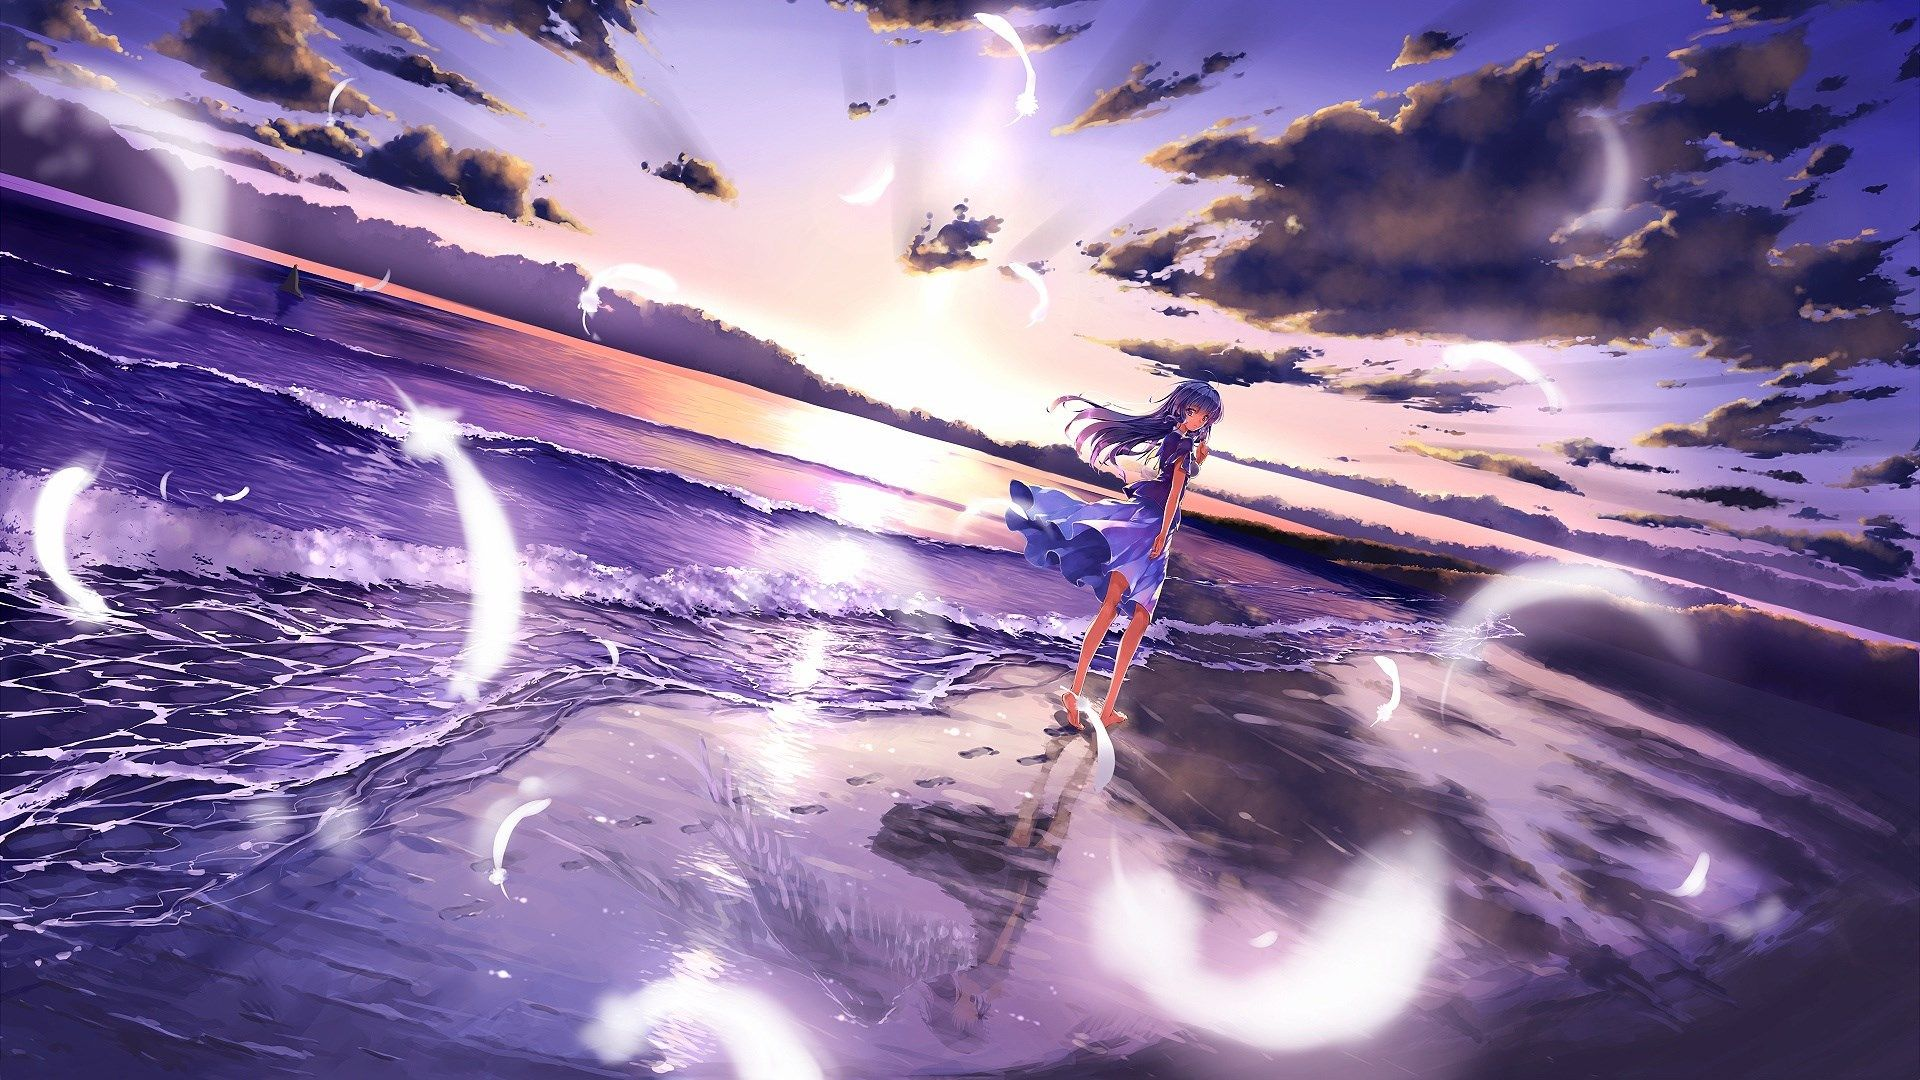 Tuesday Fairy - free download pictures of anime girl - 1920 x 1080 ...